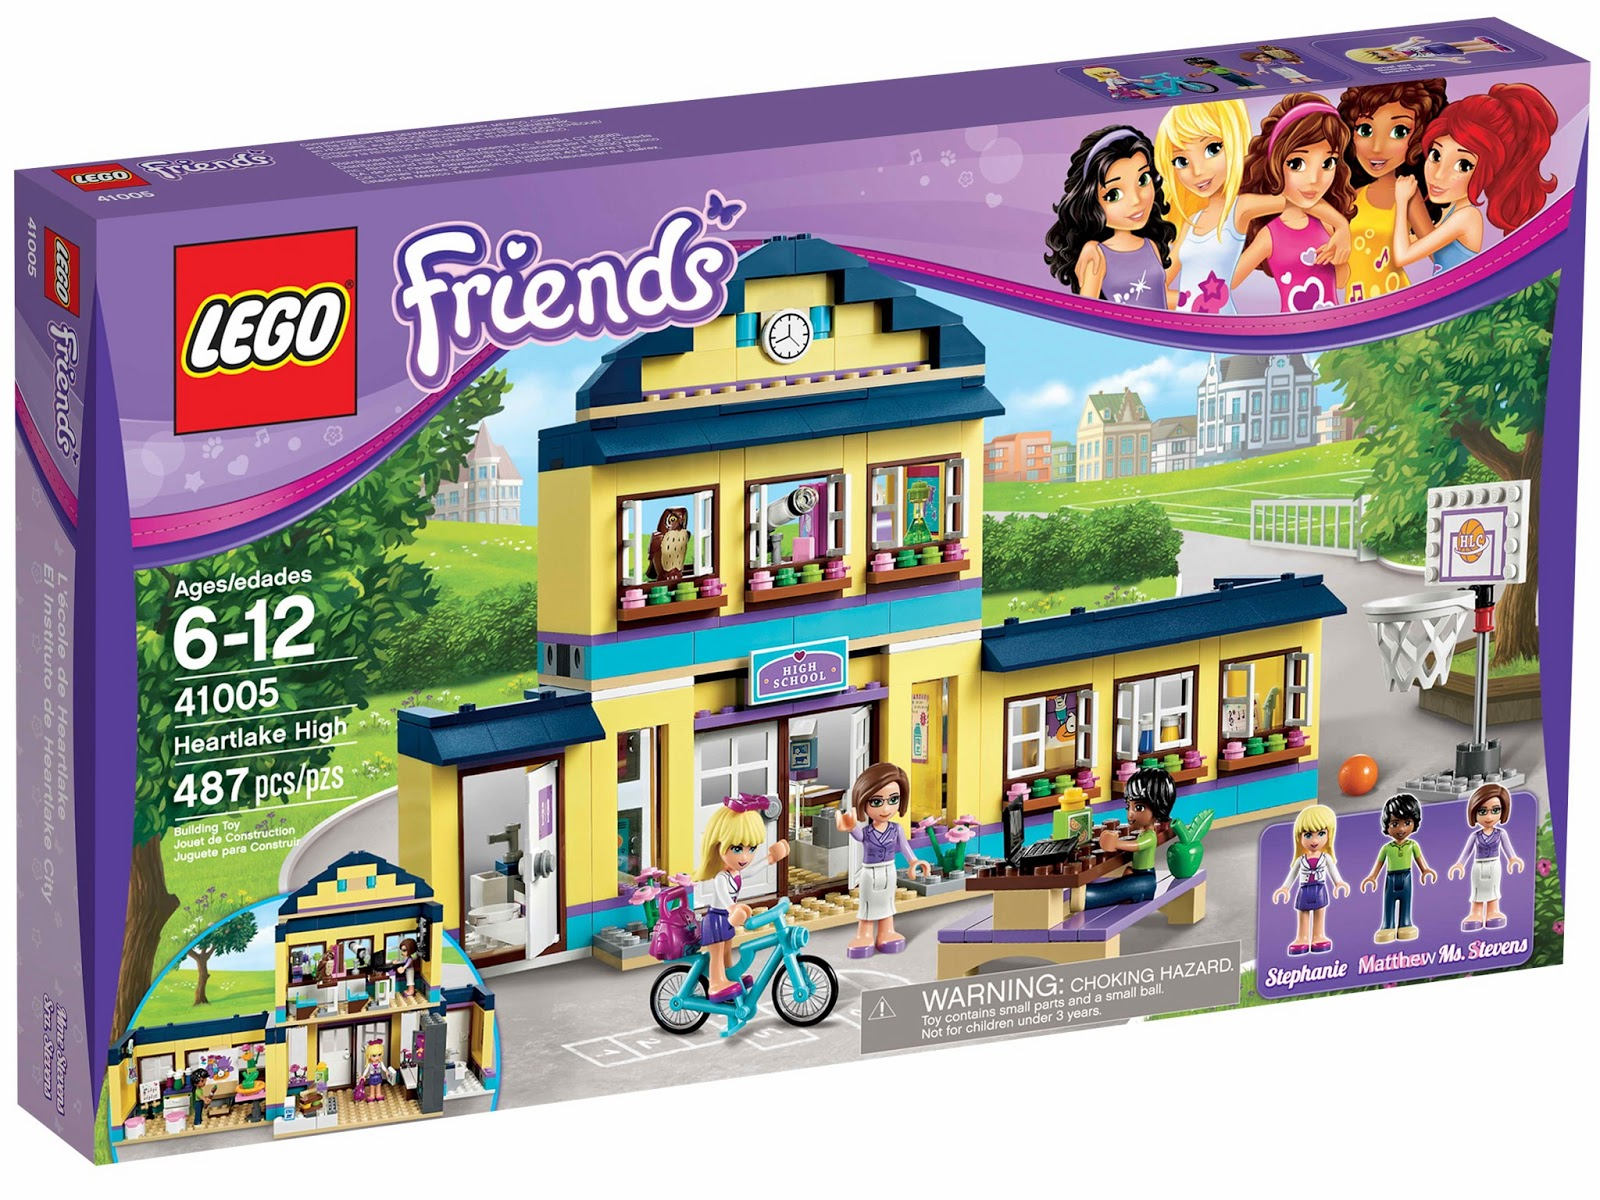 lego friends heartlake high - photo #2